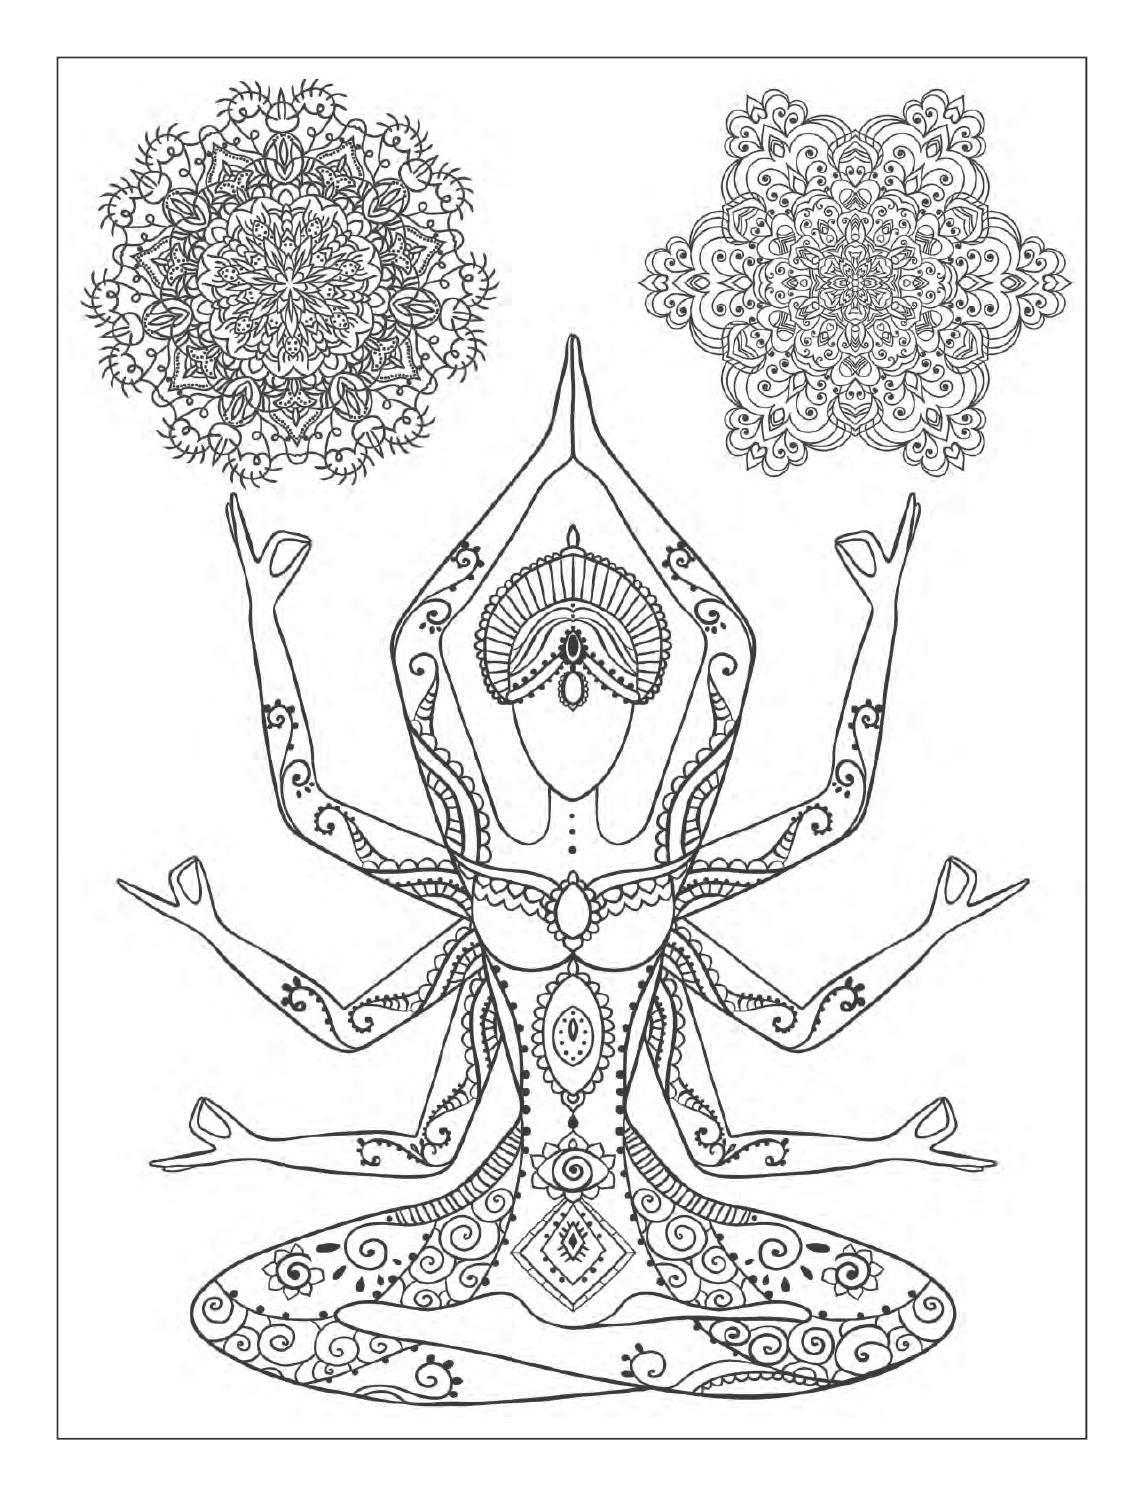 mandala meditation coloring pages printable mandala meditation to color 16 by kimmileshandmade mandala meditation coloring pages